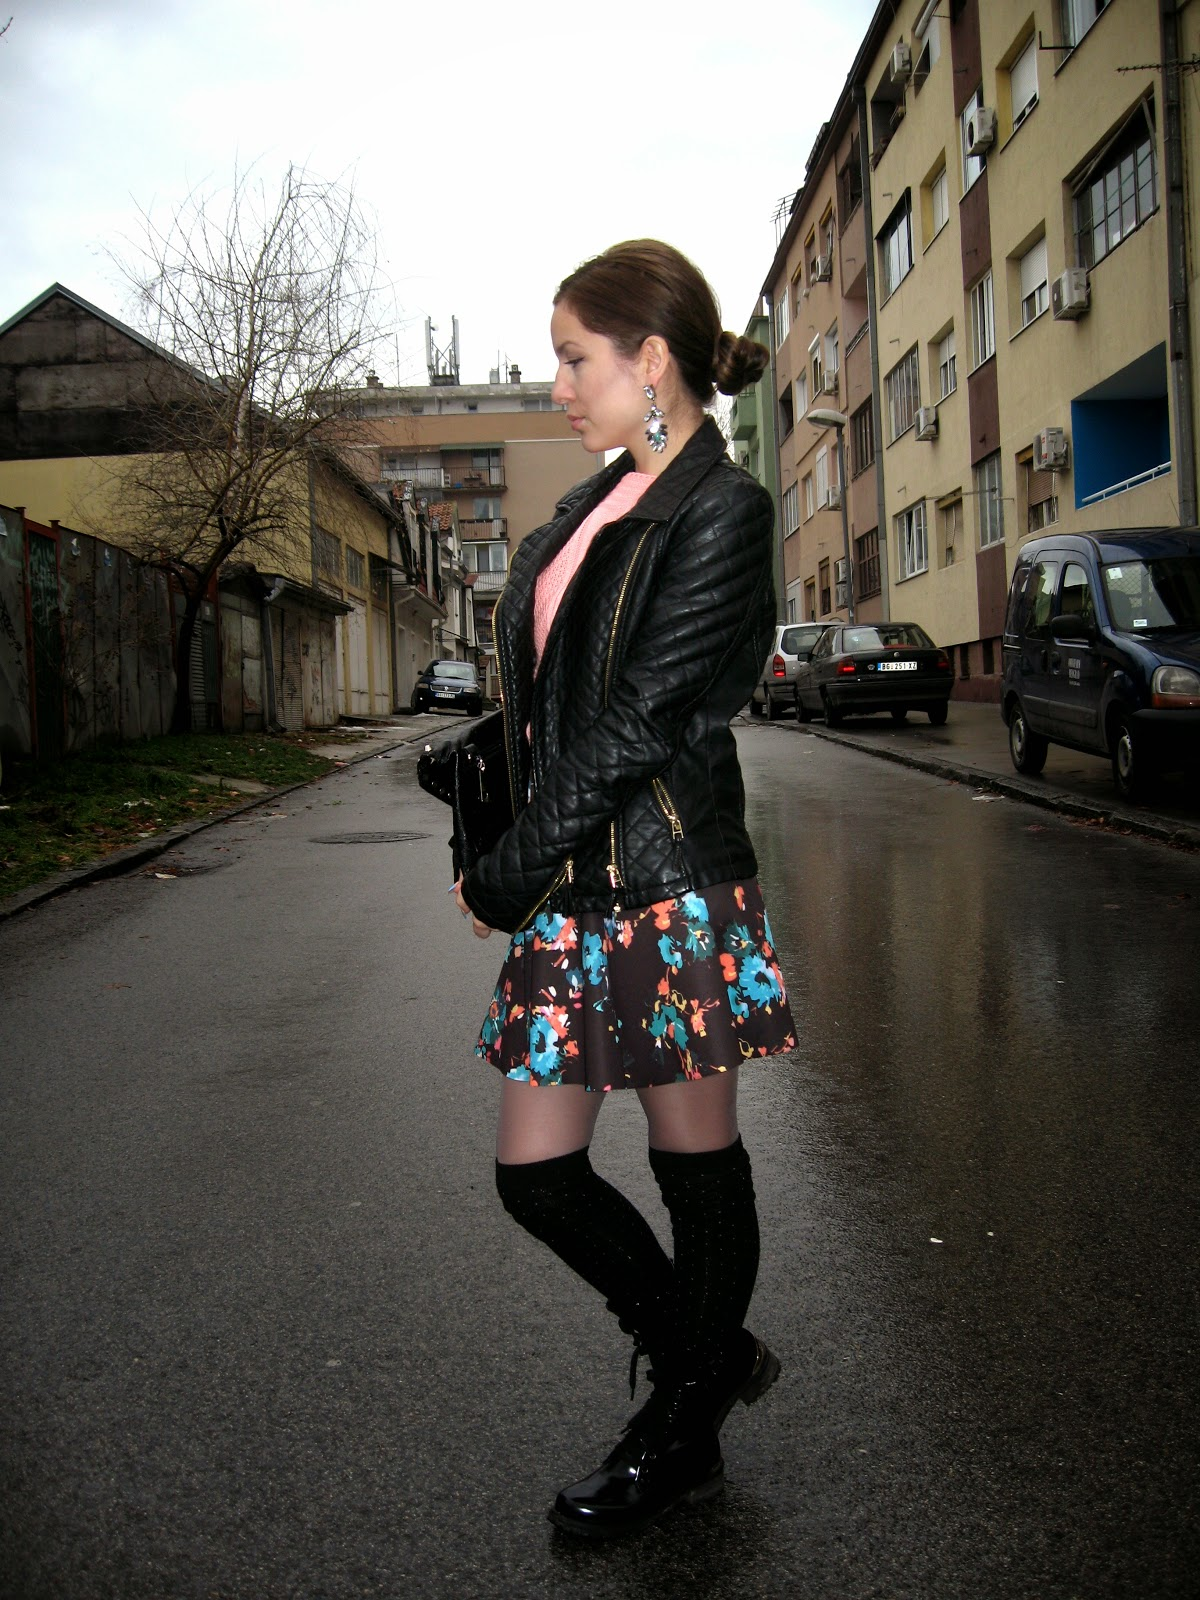 outfit, bershka skirt, black faux leather jacket, peach color sweater, colorful rhinestone earrings, black clutch, black knee high socks, black combat boots, dr martens boots